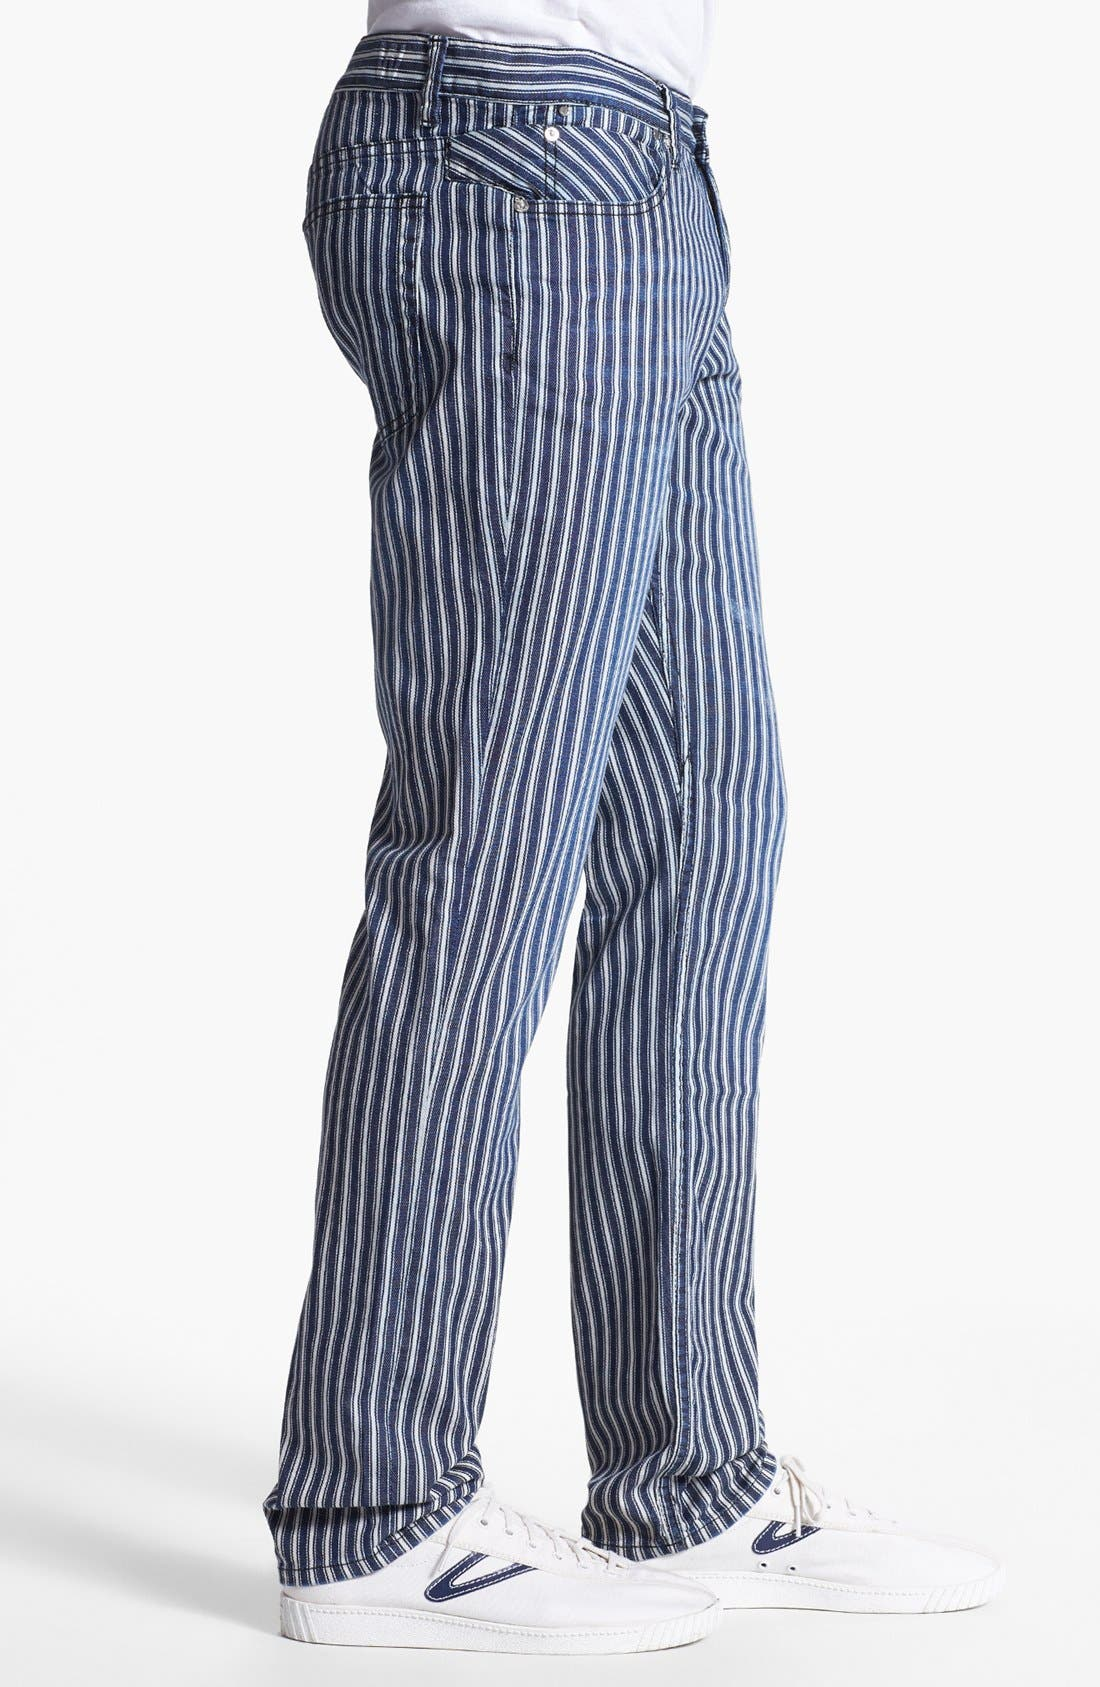 Alternate Image 3  - Williamsburg Garment Company 'Grand Street' Slim Fit Jeans (Engineer Stripe)